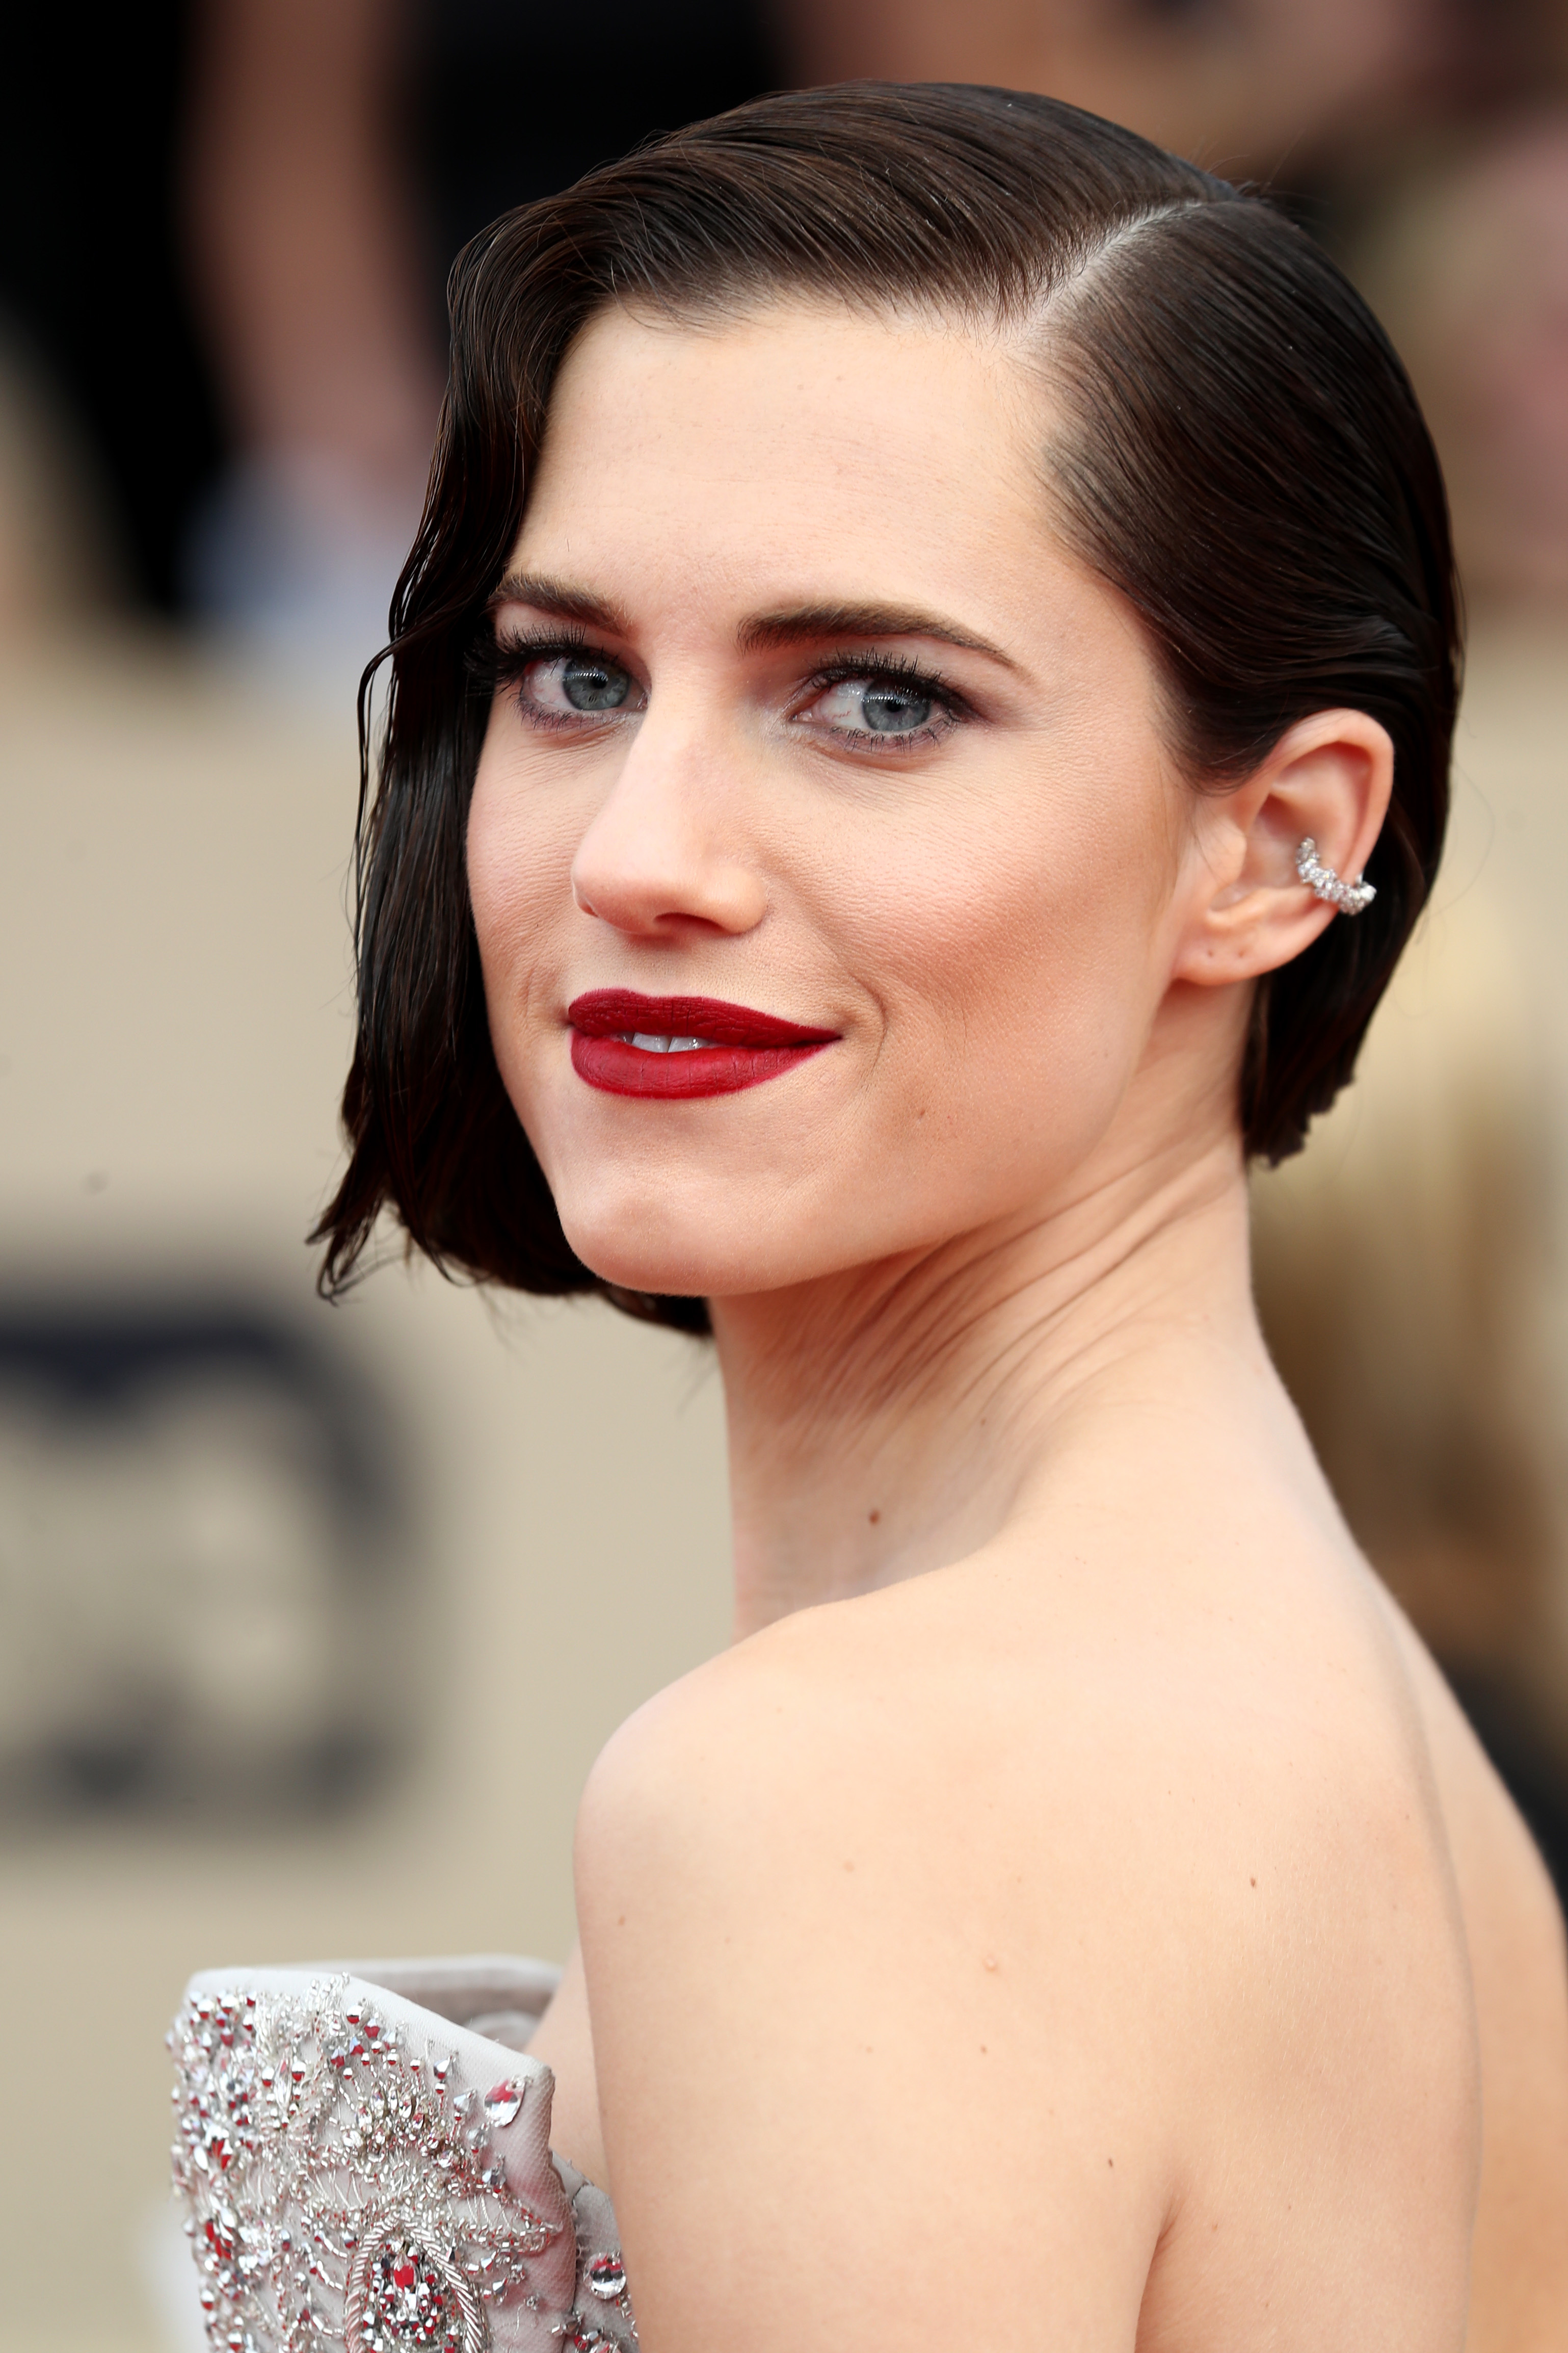 Allison Williams attends the 24th Annual Screen Actors Guild Awards in Los Angeles on Jan. 21, 2018.